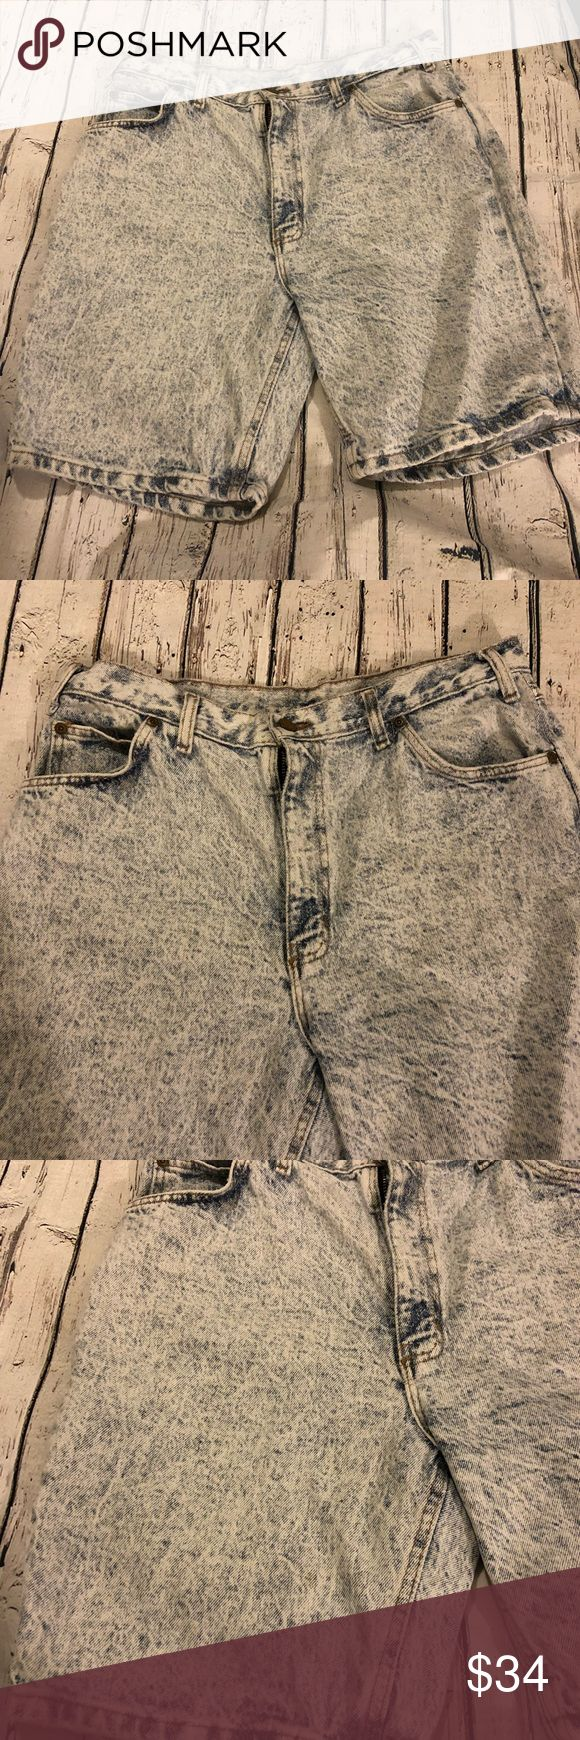 80's 90's Vintage Men's Acid Wash Jeans Shorts 34 Men's  Bristol Blues  Authentic 80's / 90's  Acid Wash  Jean shorts  Size 34  Mild signs of wear  Great condition for age No stains tears or holes  No weird odors  Smoke free pet free home Vintage Jeans Straight